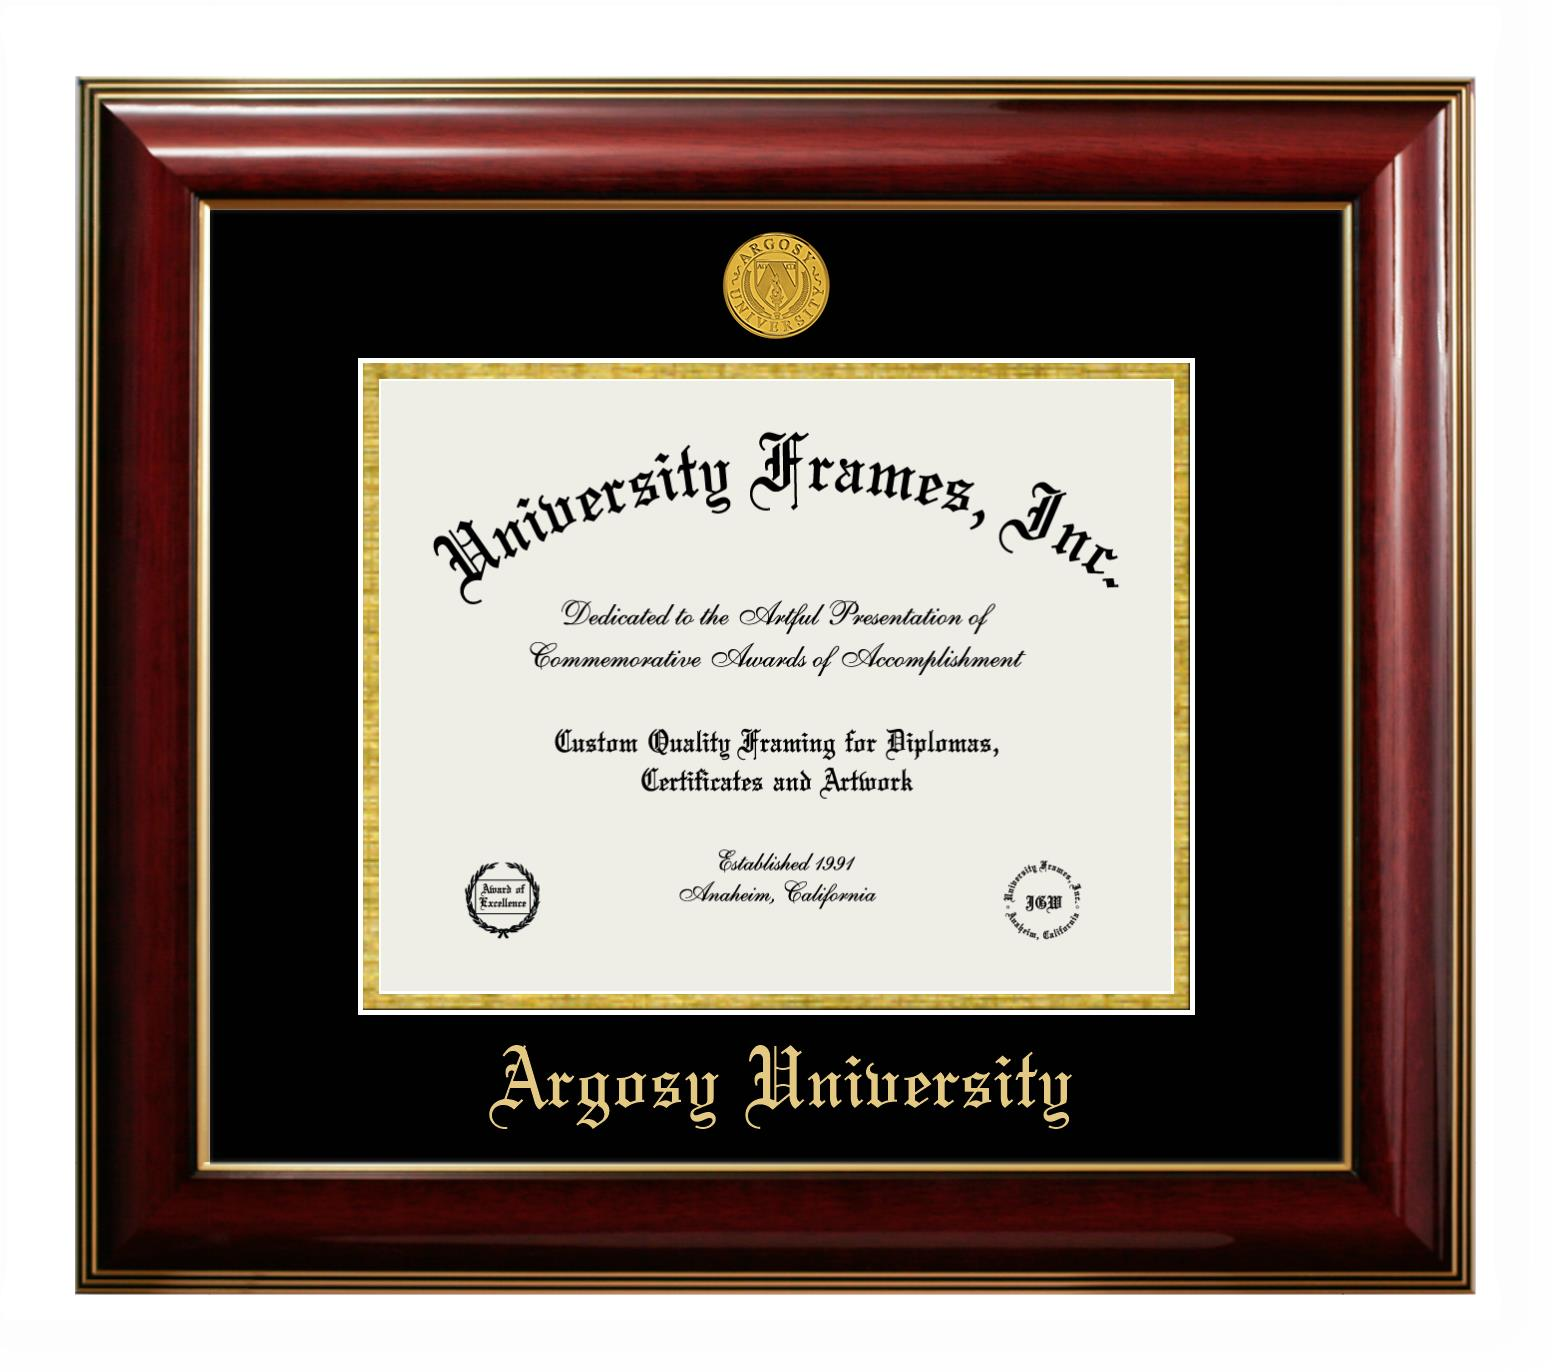 Argosy University Diploma With Tassel Box Frame In Satin Mahogany With Black Silver Mats